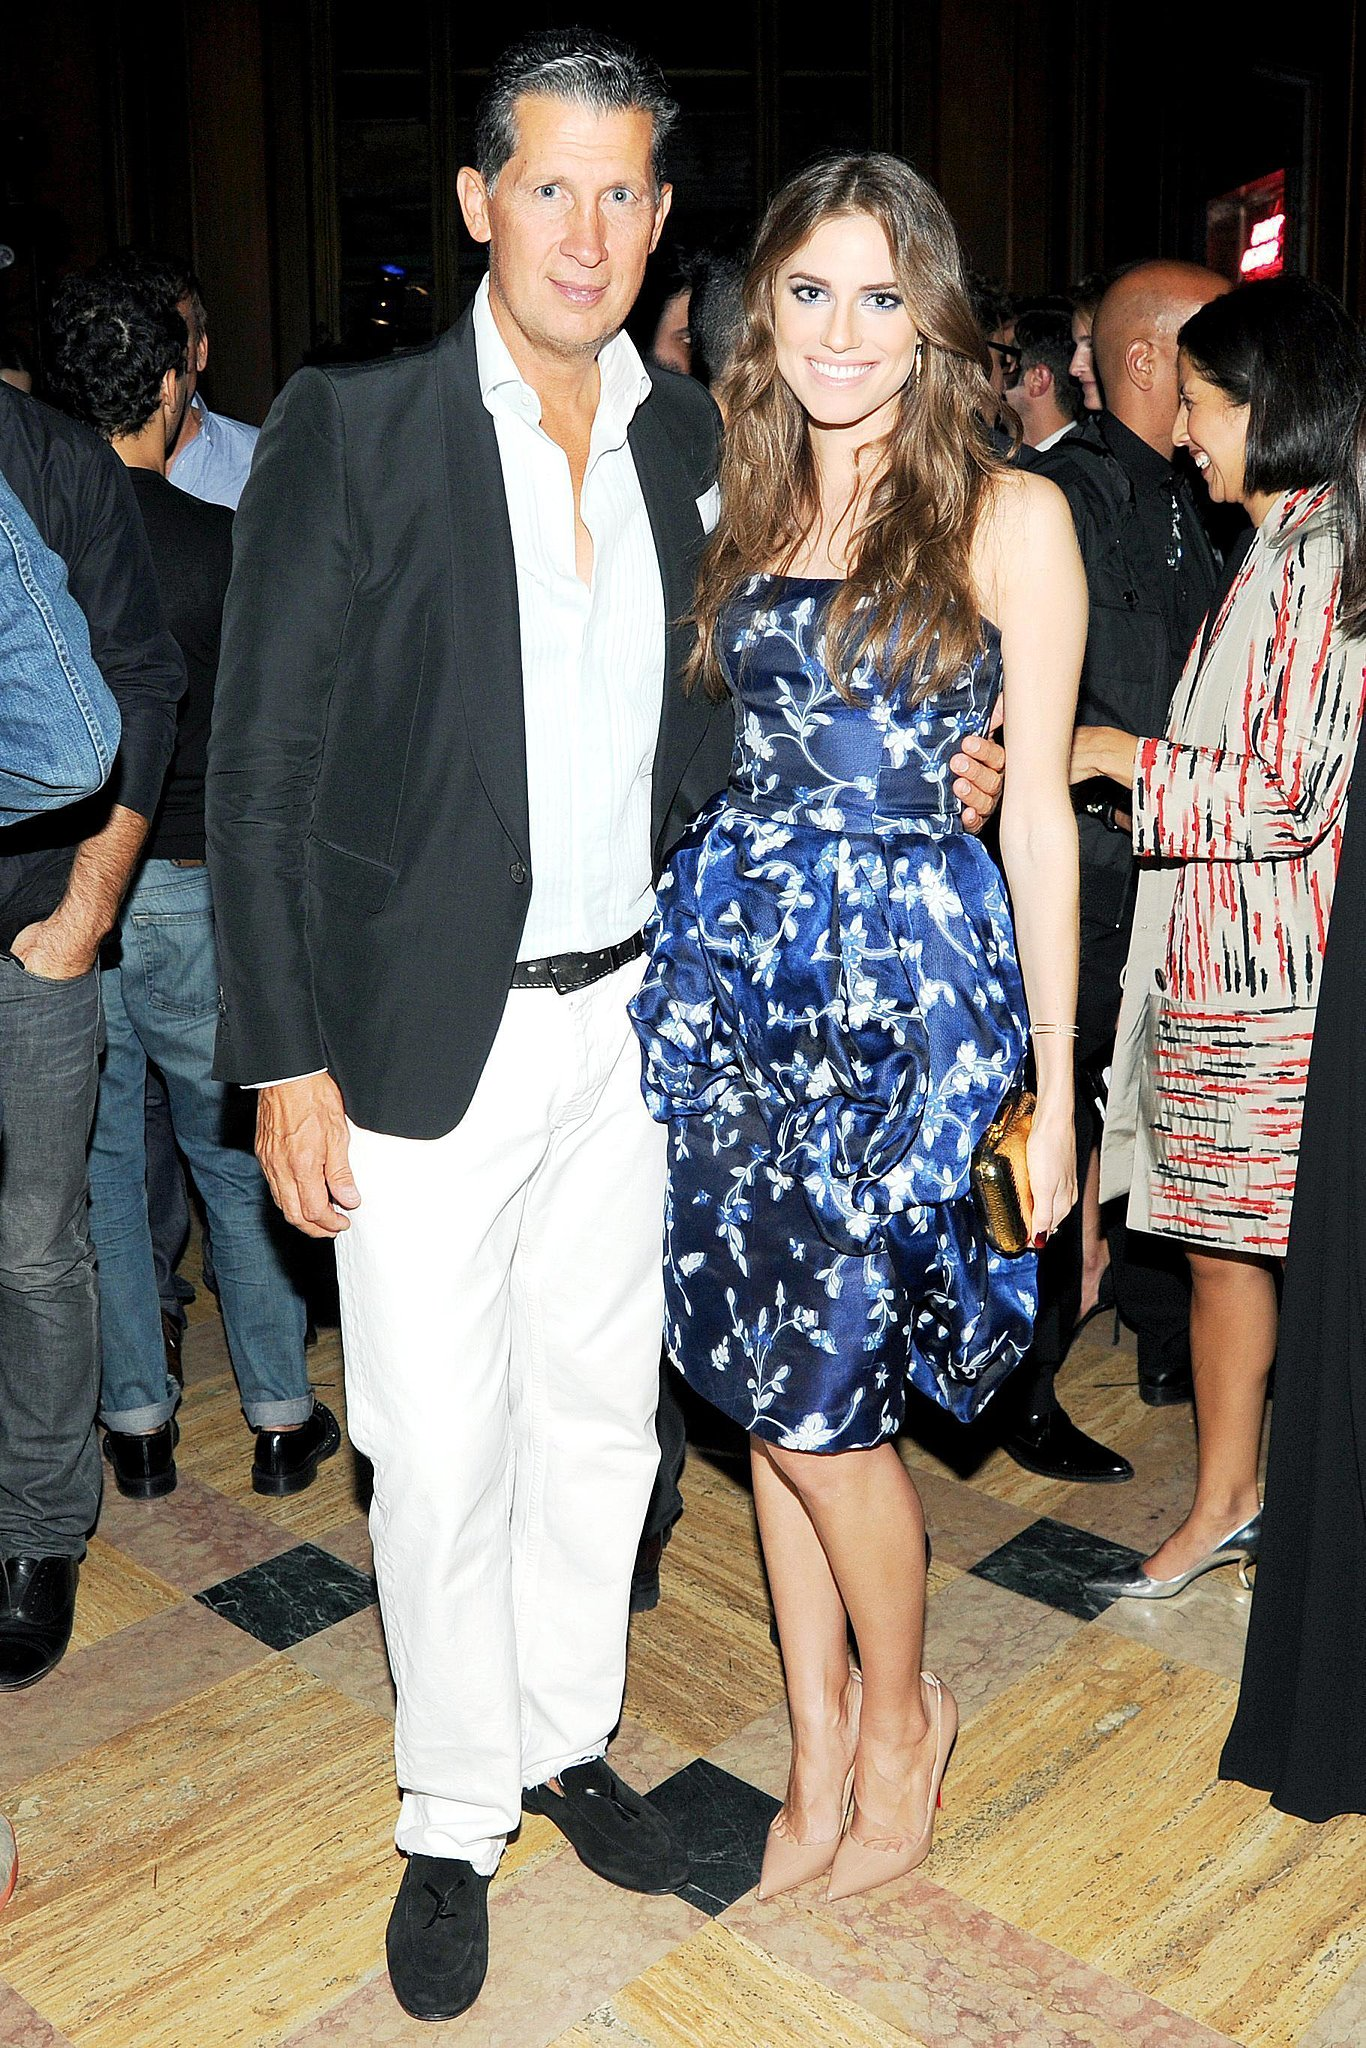 At the Stefano Tonchi and Craig McDean cocktail party in NYC, Allison Williams posed with Tonchi wearing a beautiful blue printed Oscar de la Renta peplum dress with classic nude pumps.